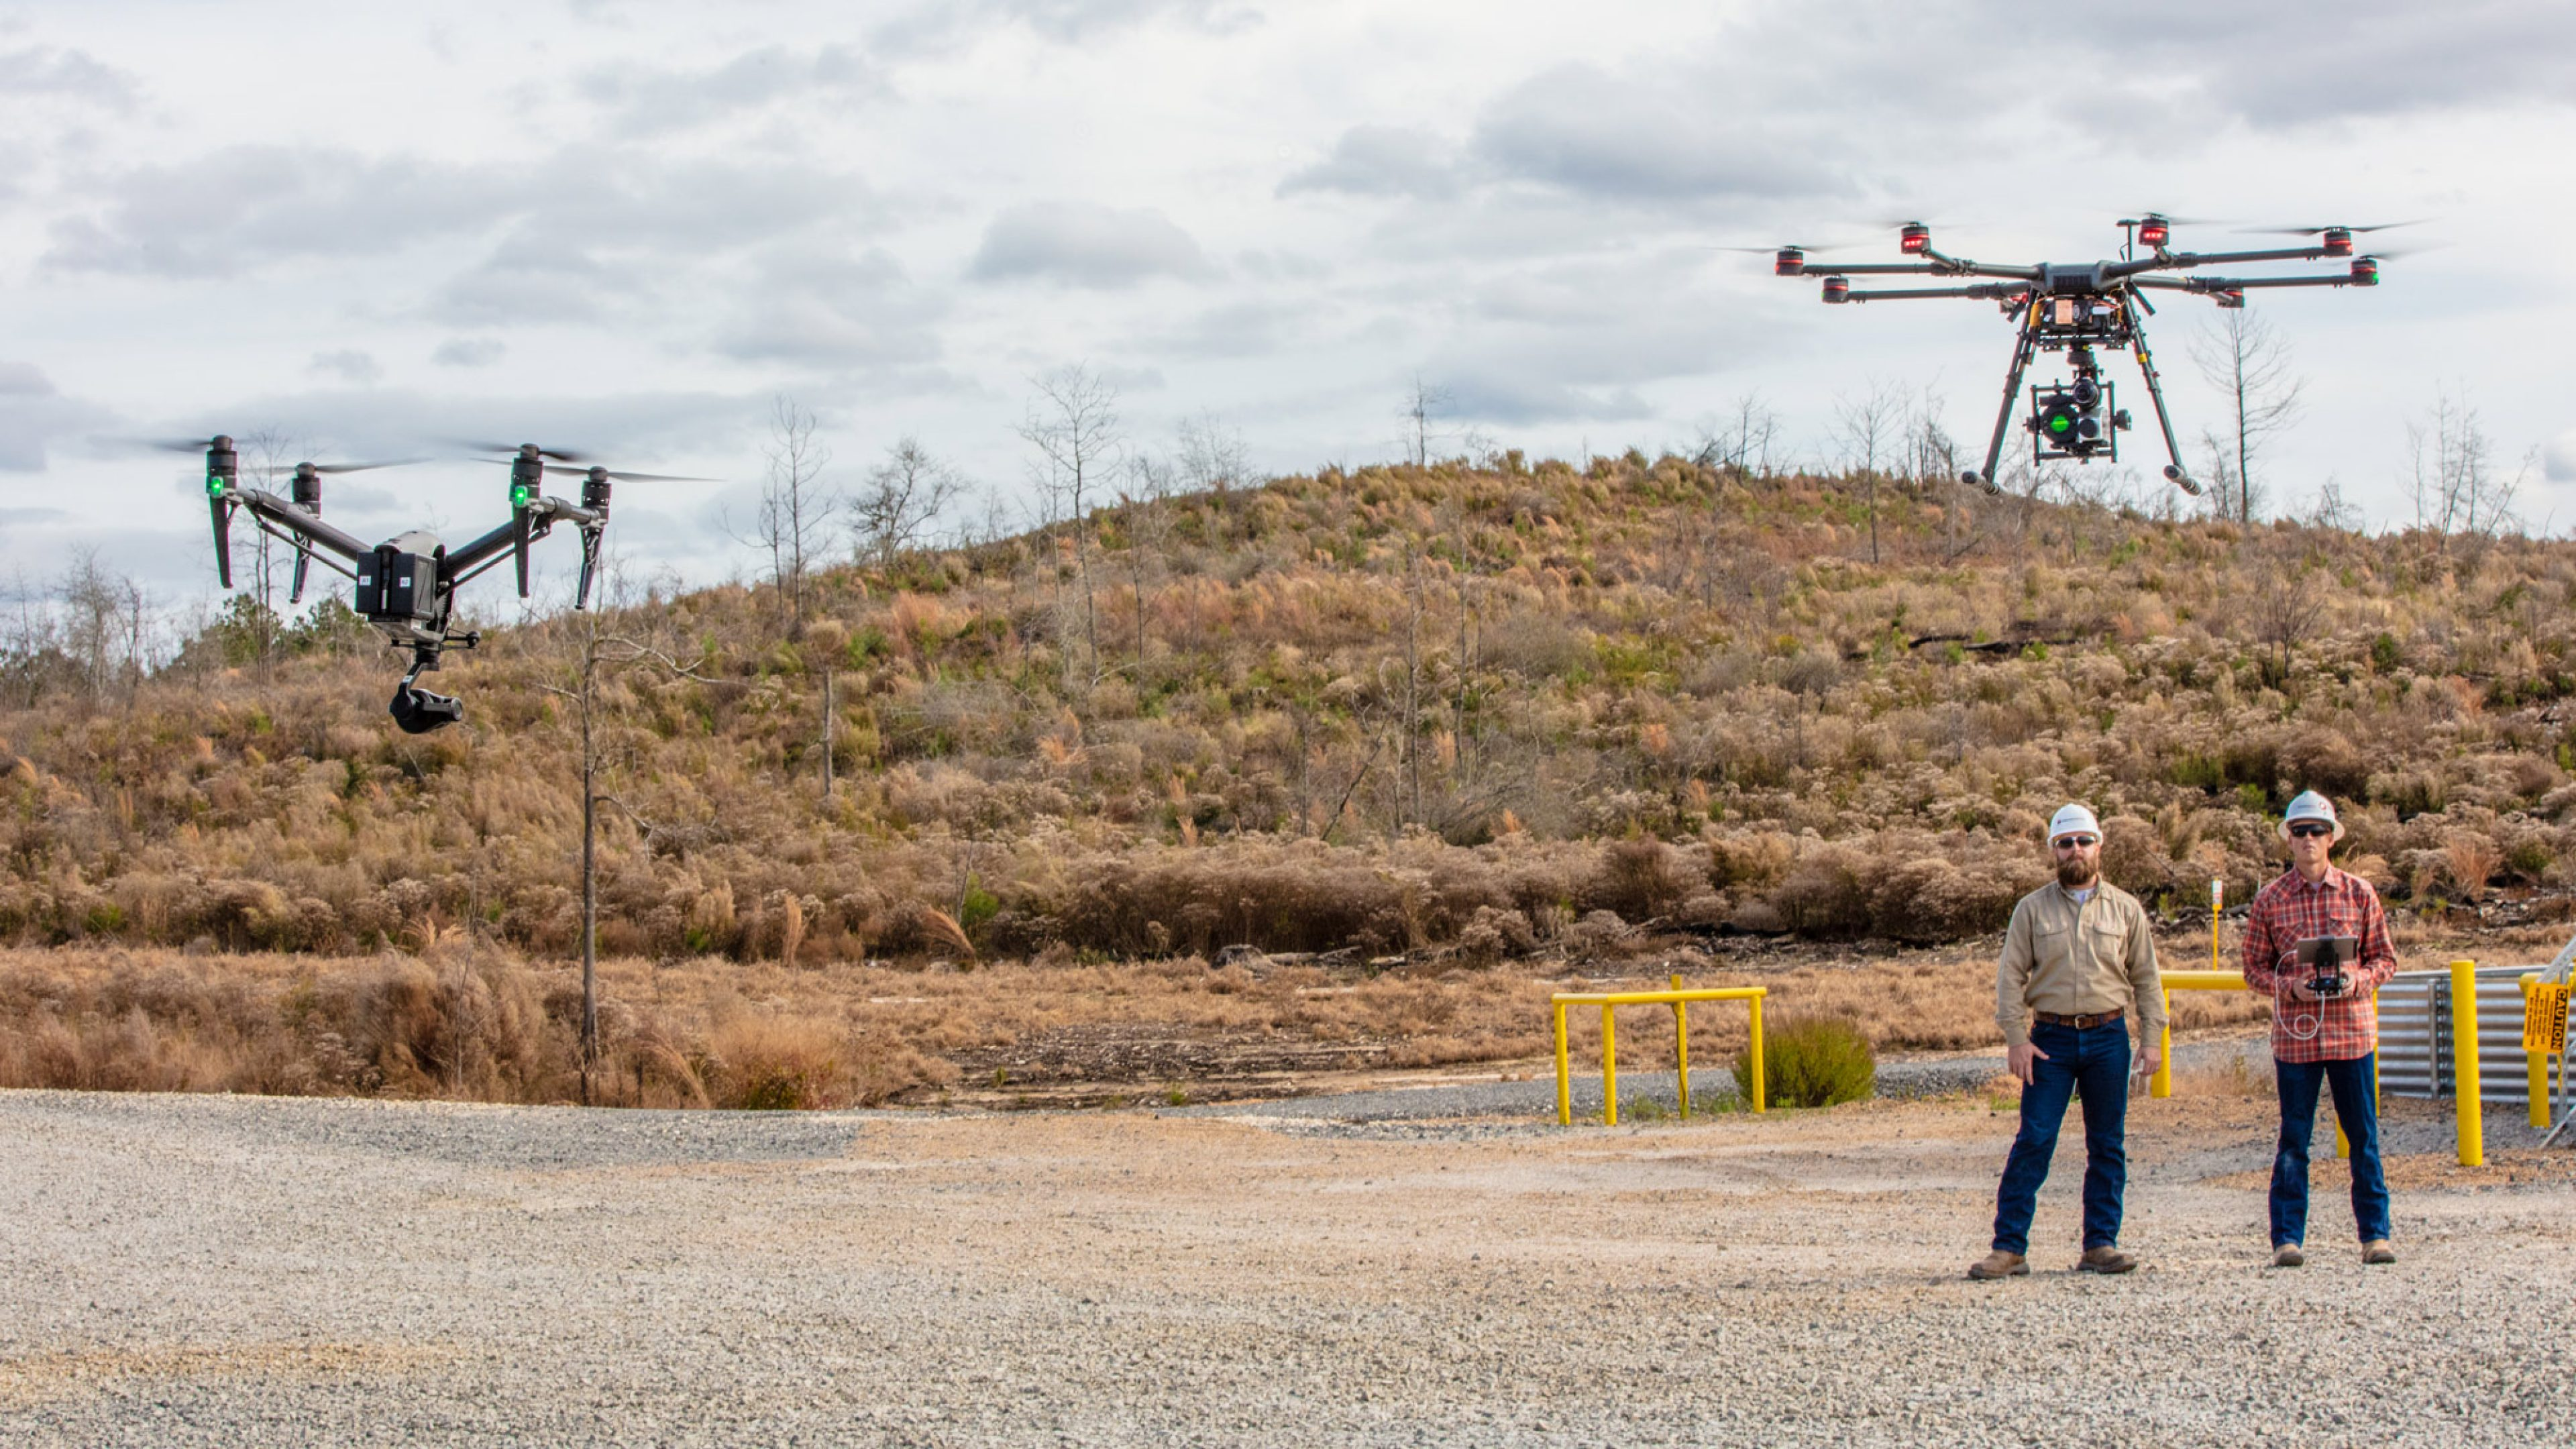 Drones are used to inspect at a BPX Energy site in East Texas, US